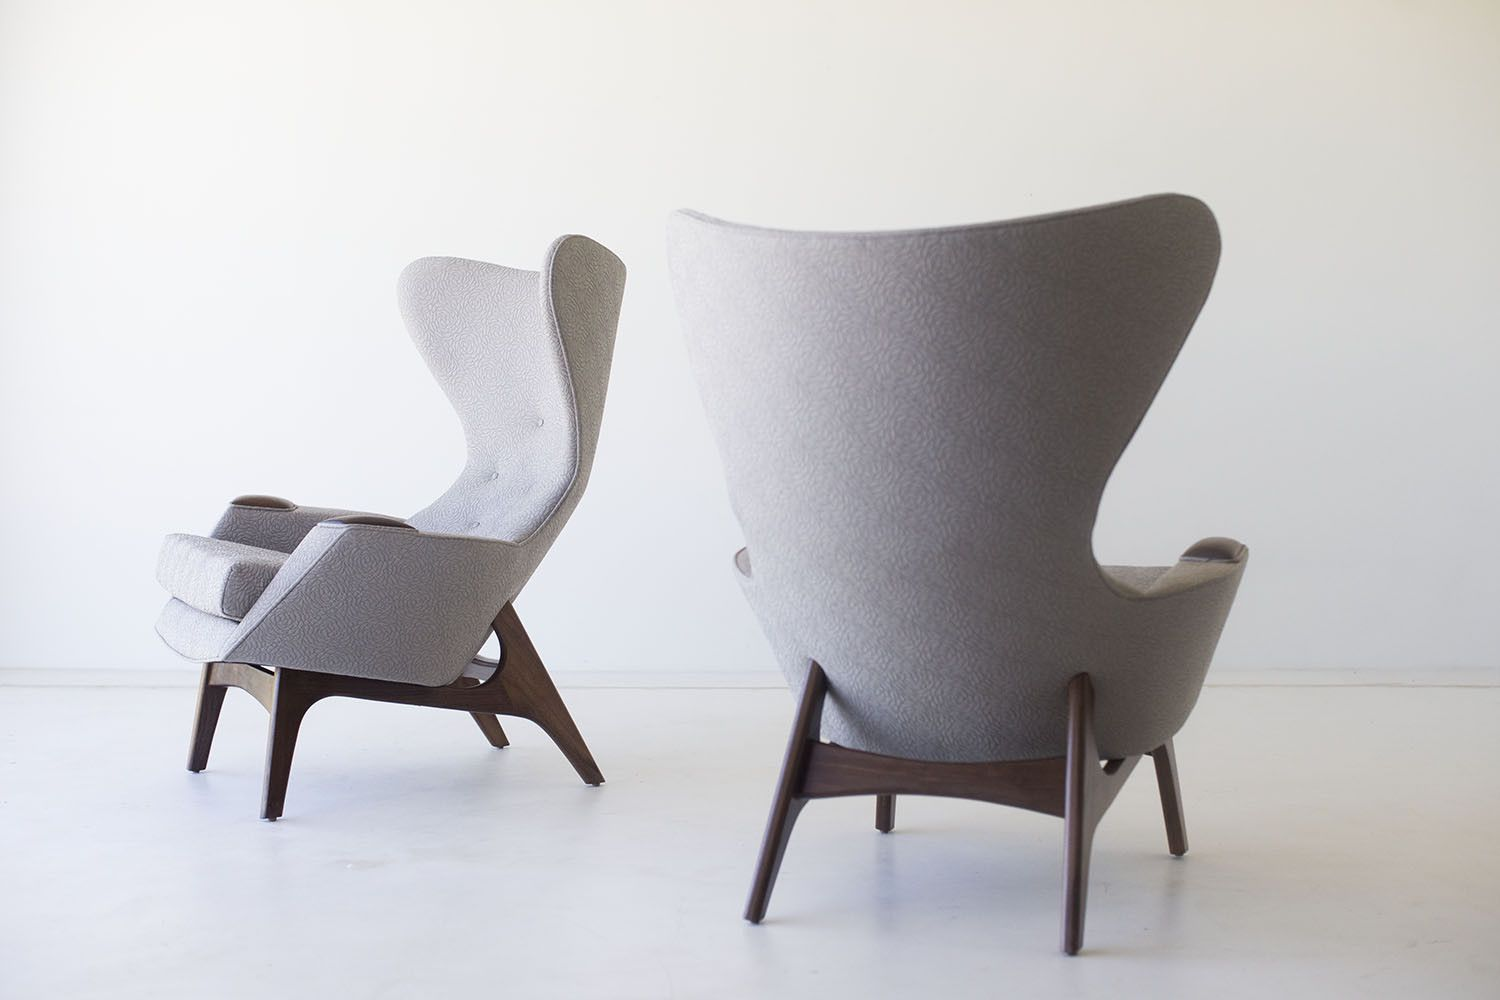 Merveilleux Modern WIng Chairs   1407.. From The Side.